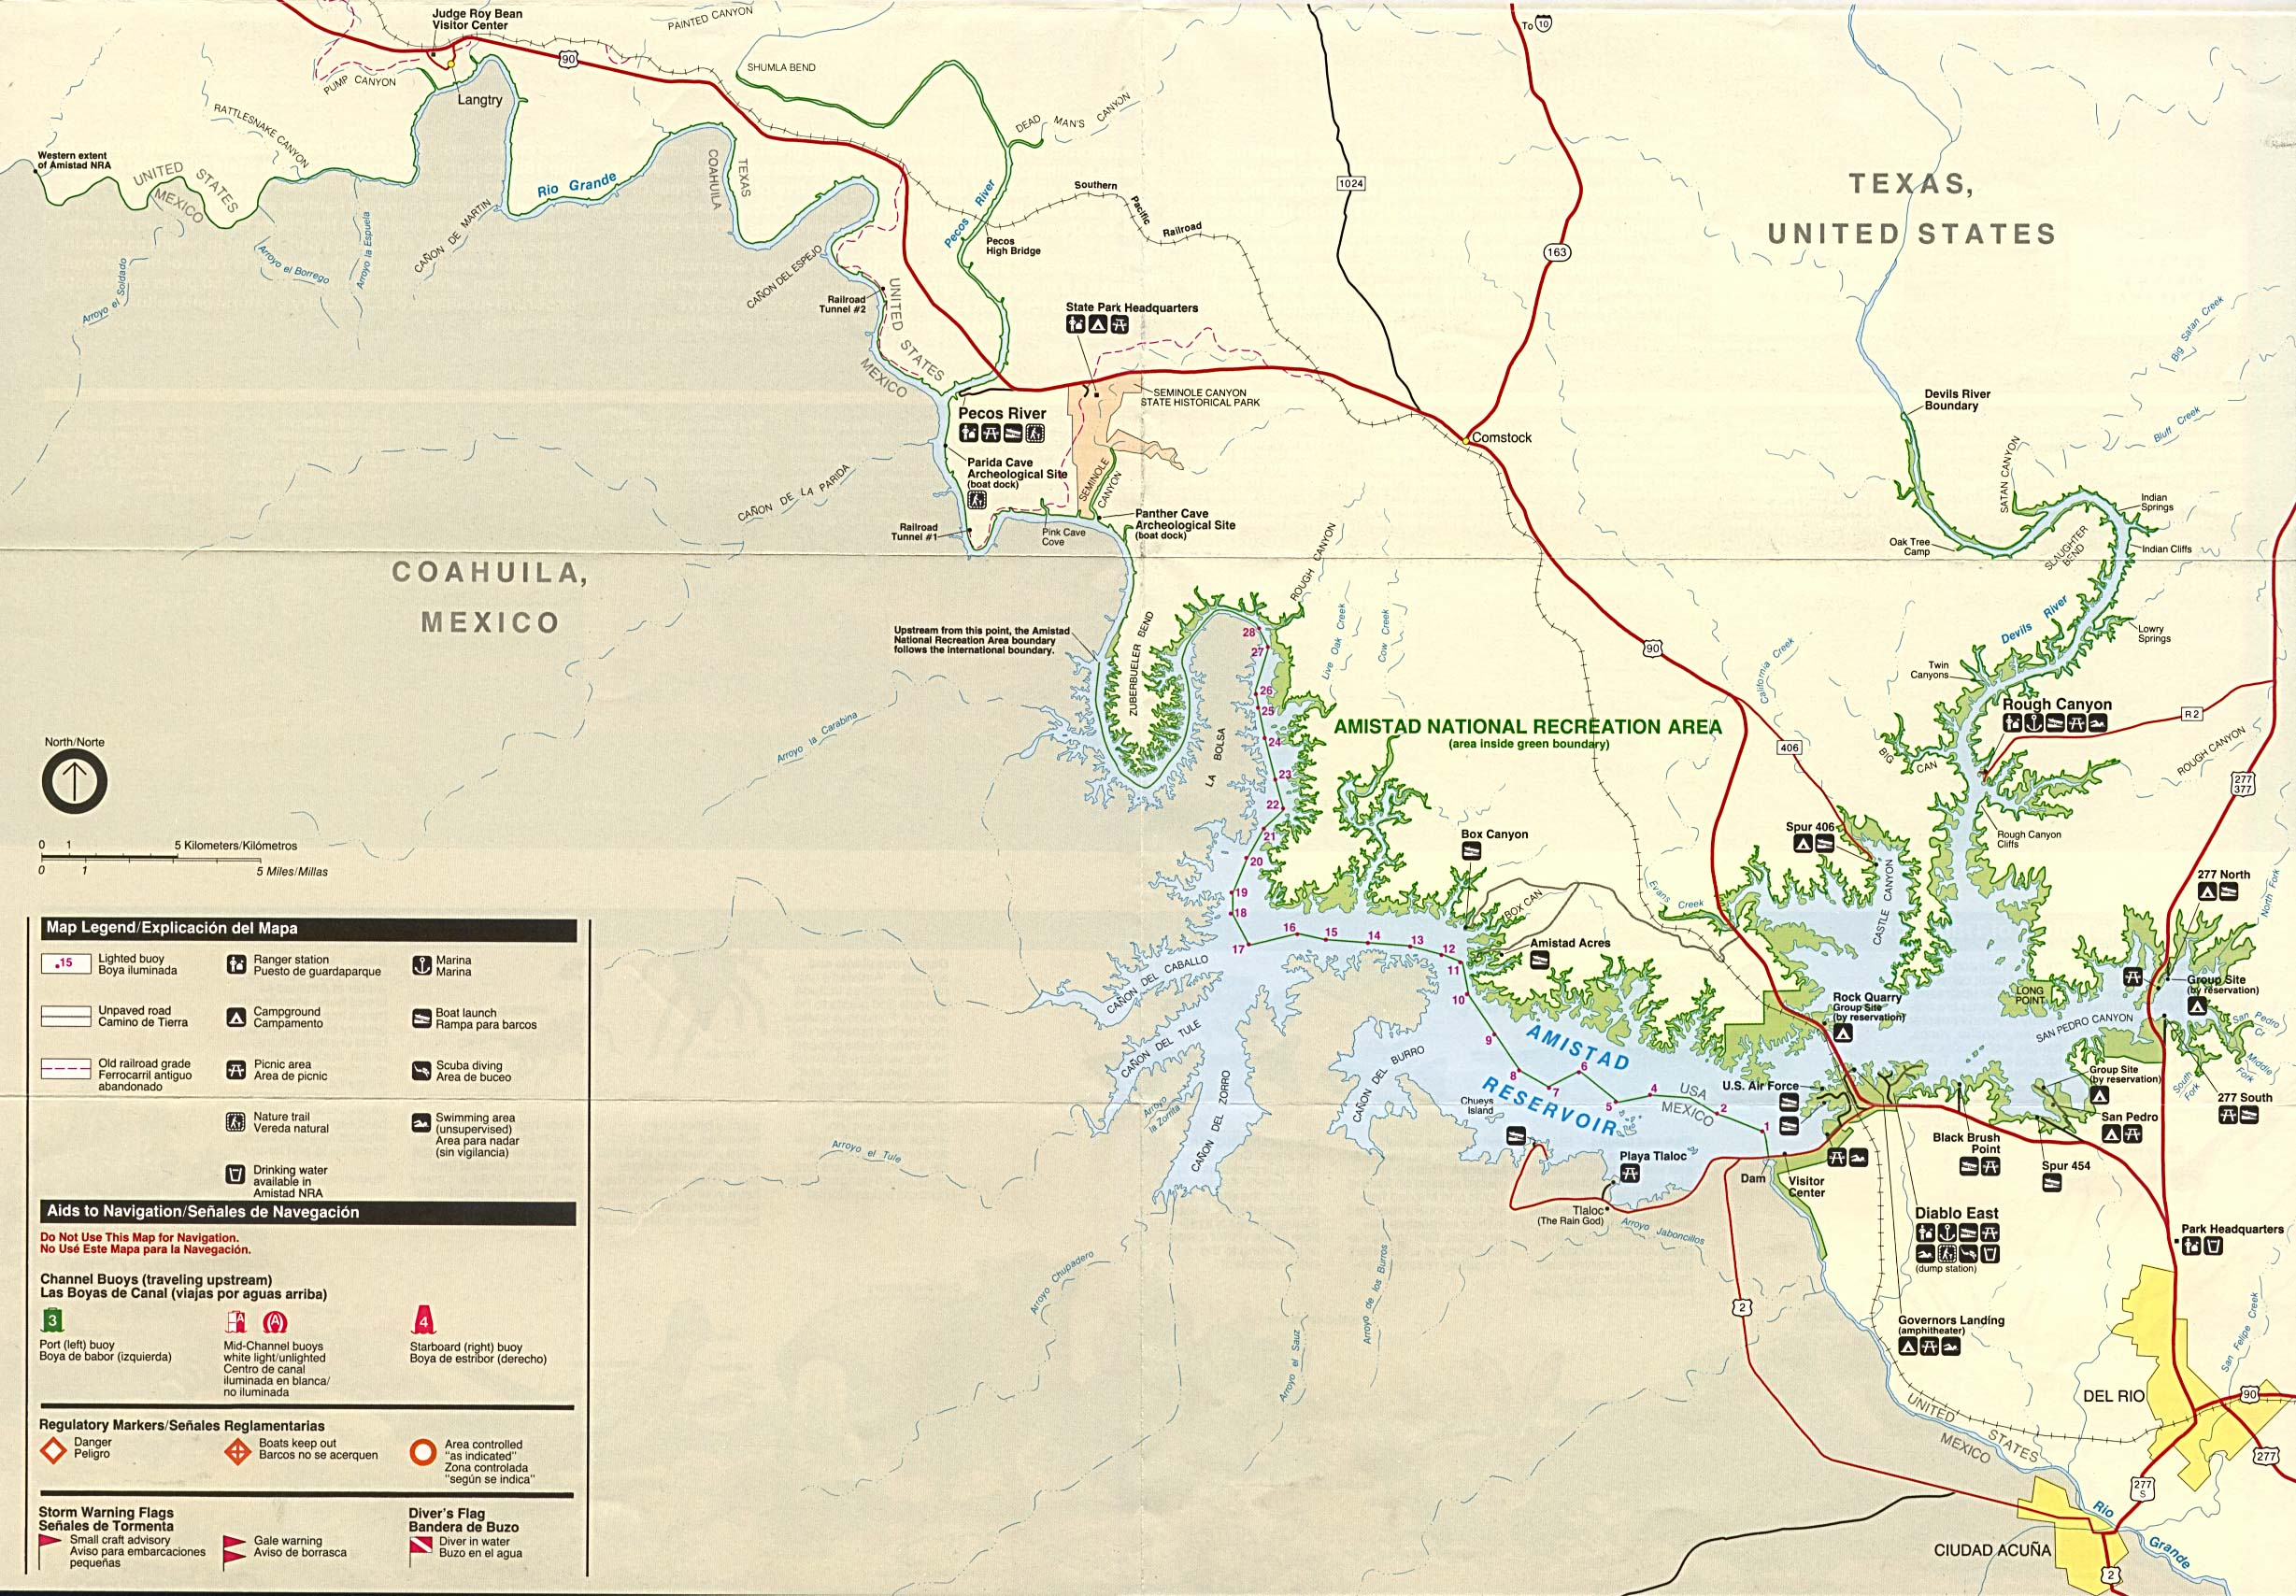 Texas State And National Park Maps - Perry-Castañeda Map Collection - Texas Hill Country Map Pdf